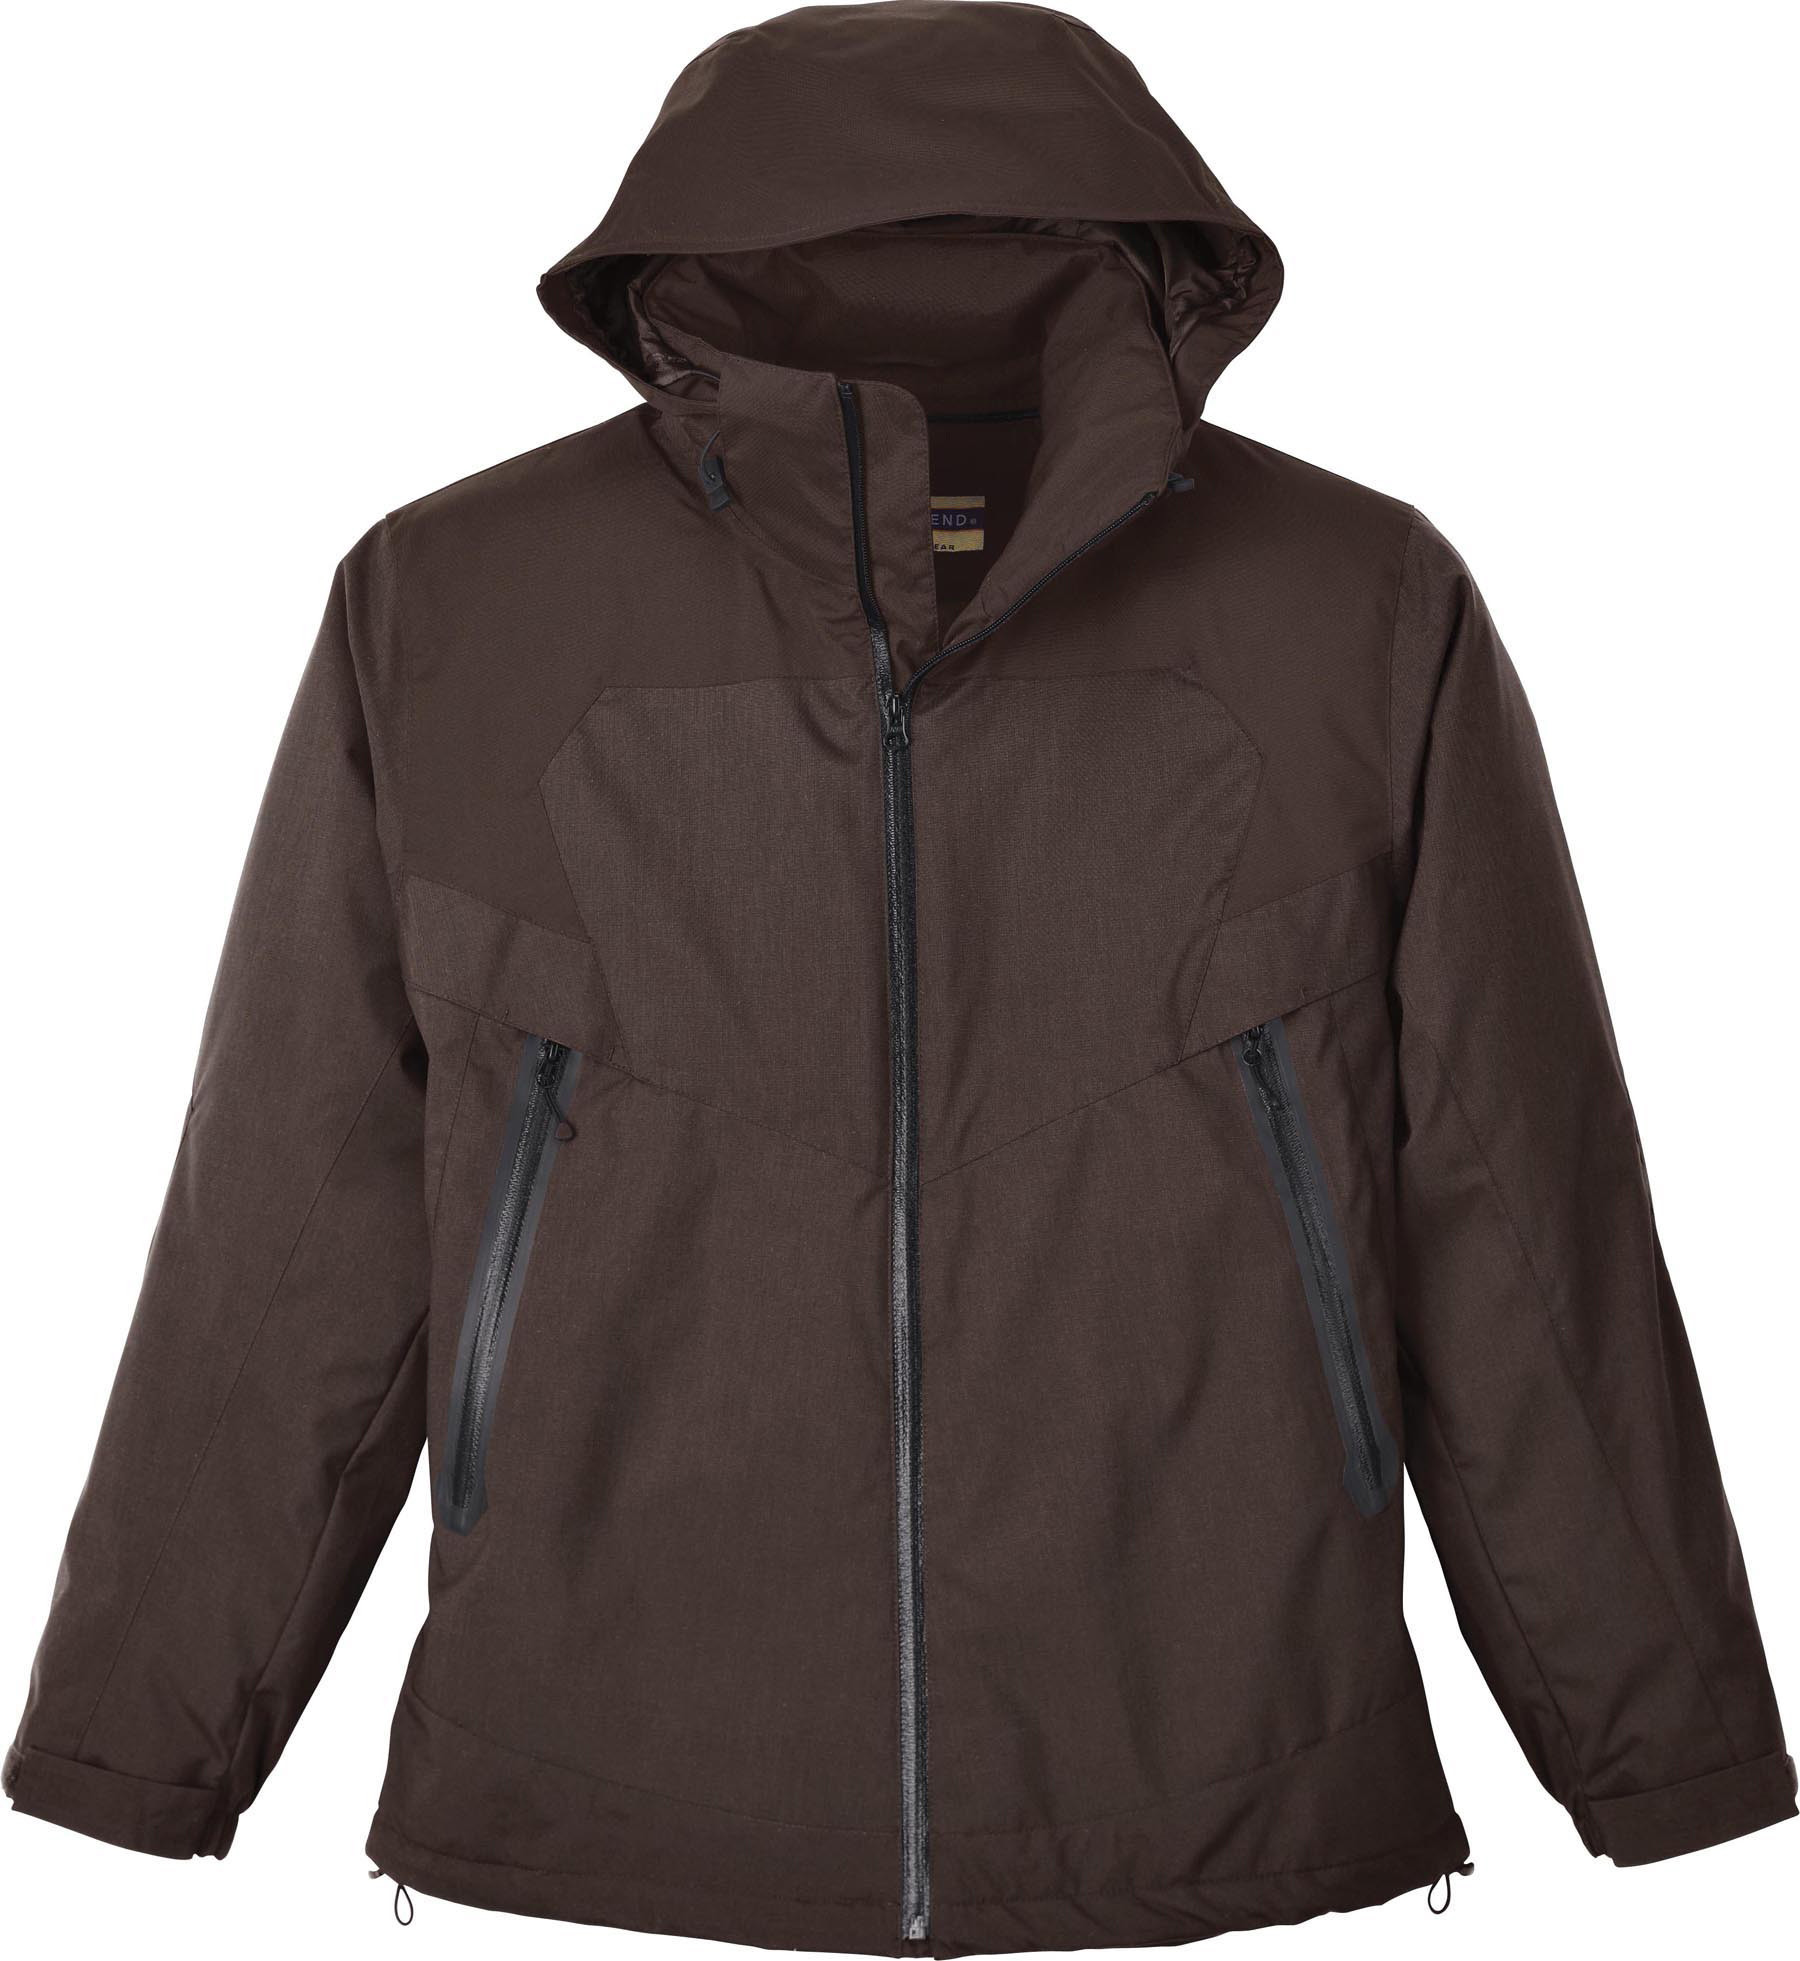 Ash City Performance Jackets 88139 - Men's Techno Performance ...